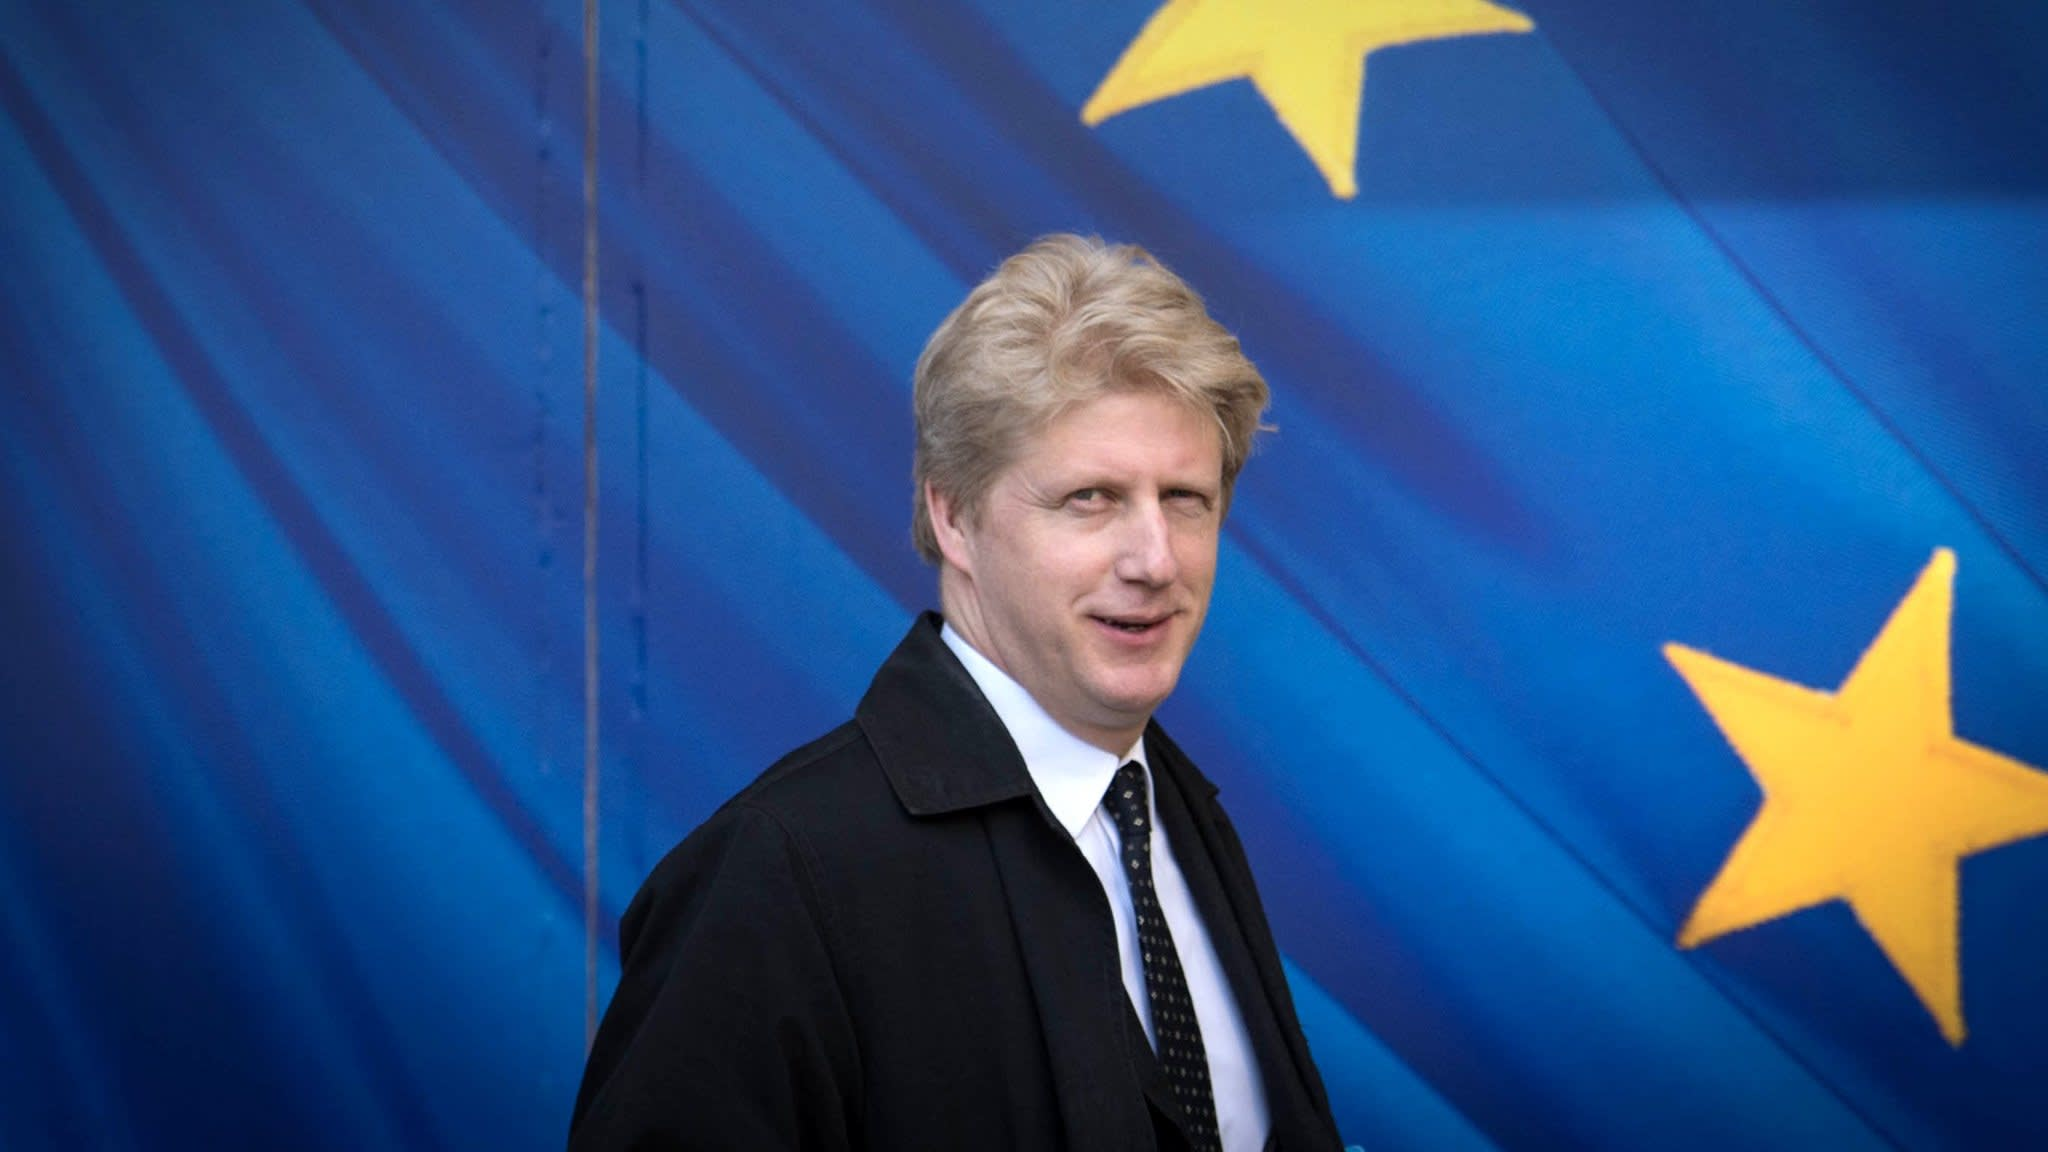 Jo Johnson quits over Brexit and calls for vote on deal